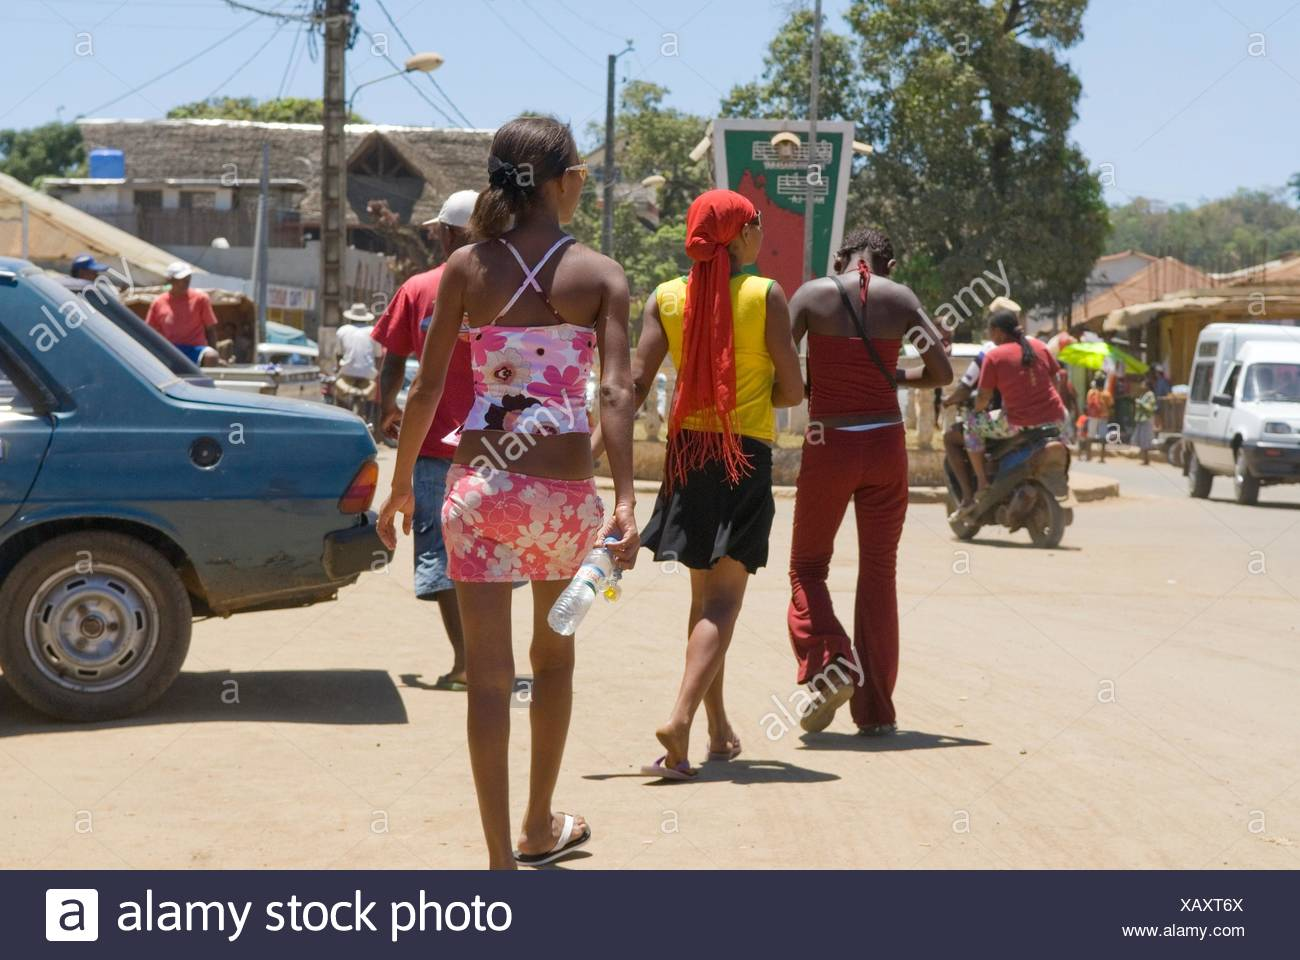 young girls in Hell-Ville Andoany, Nosy Be island, Republic of Madagascar, Indian Ocean - Stock Image